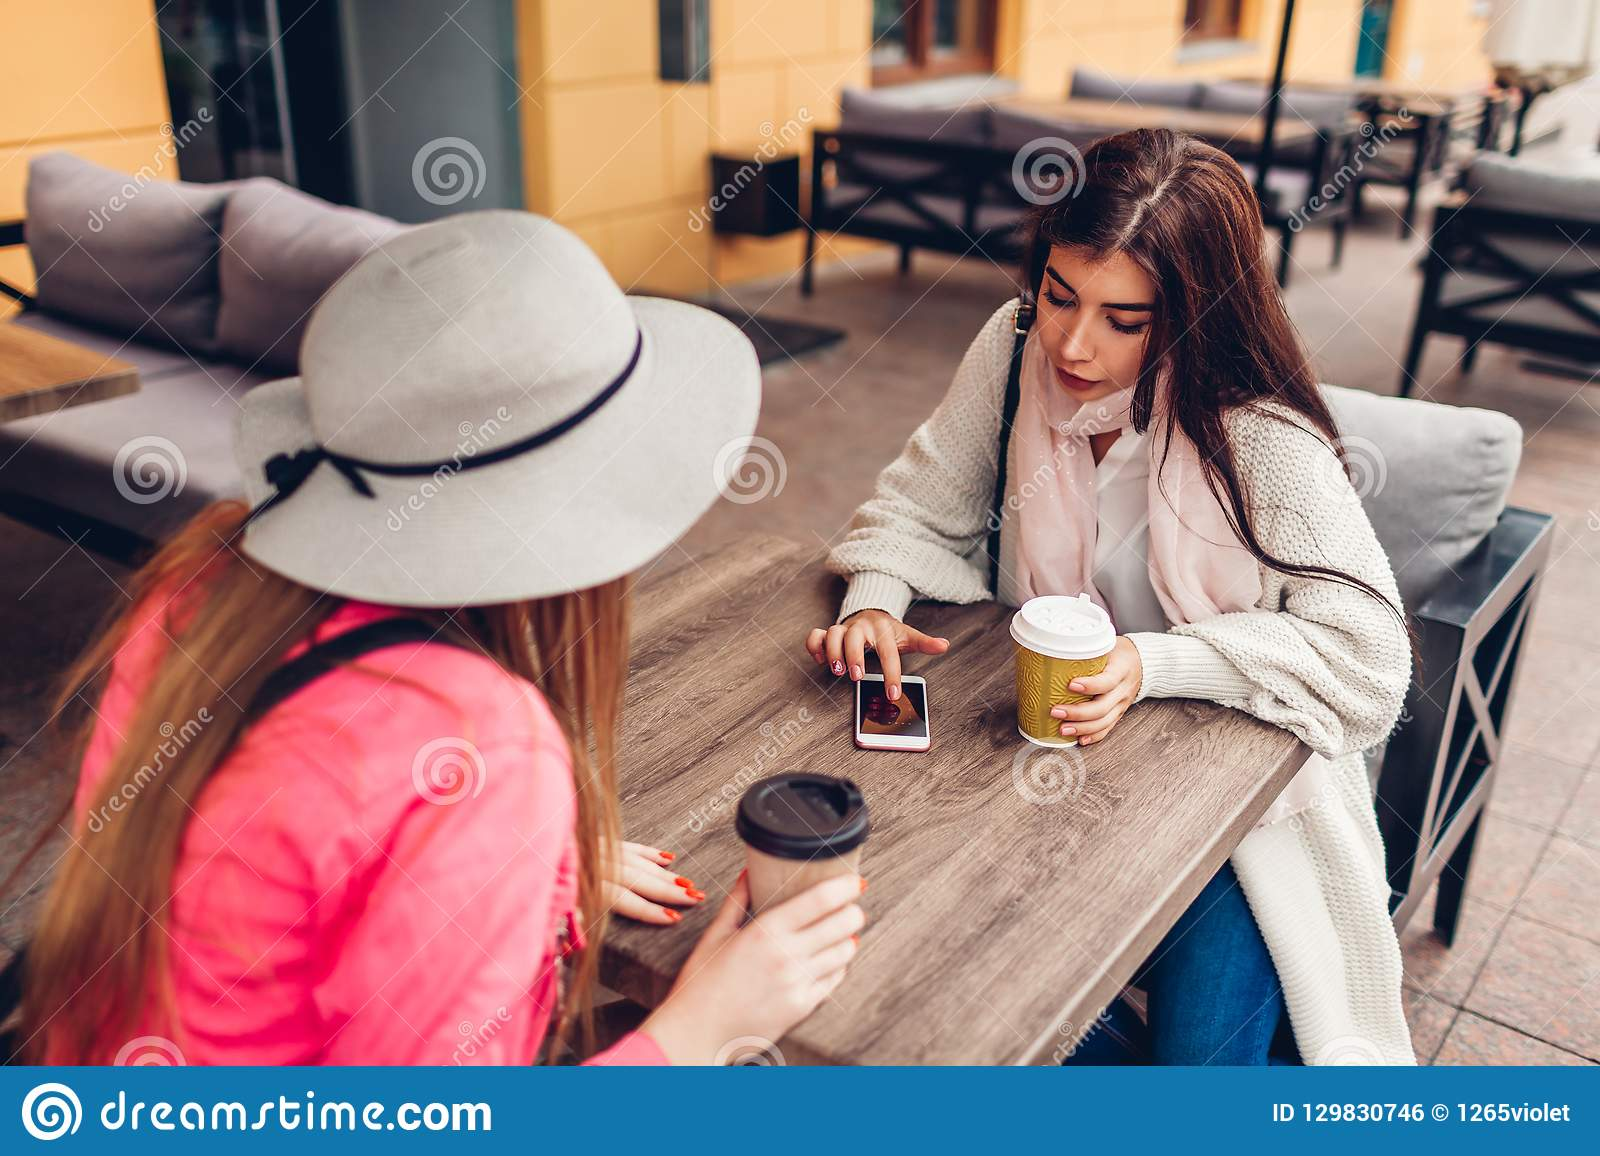 Two women chatting while having coffe in outdoor cafe. Happy friends using phone checking pictures. Girls hang out